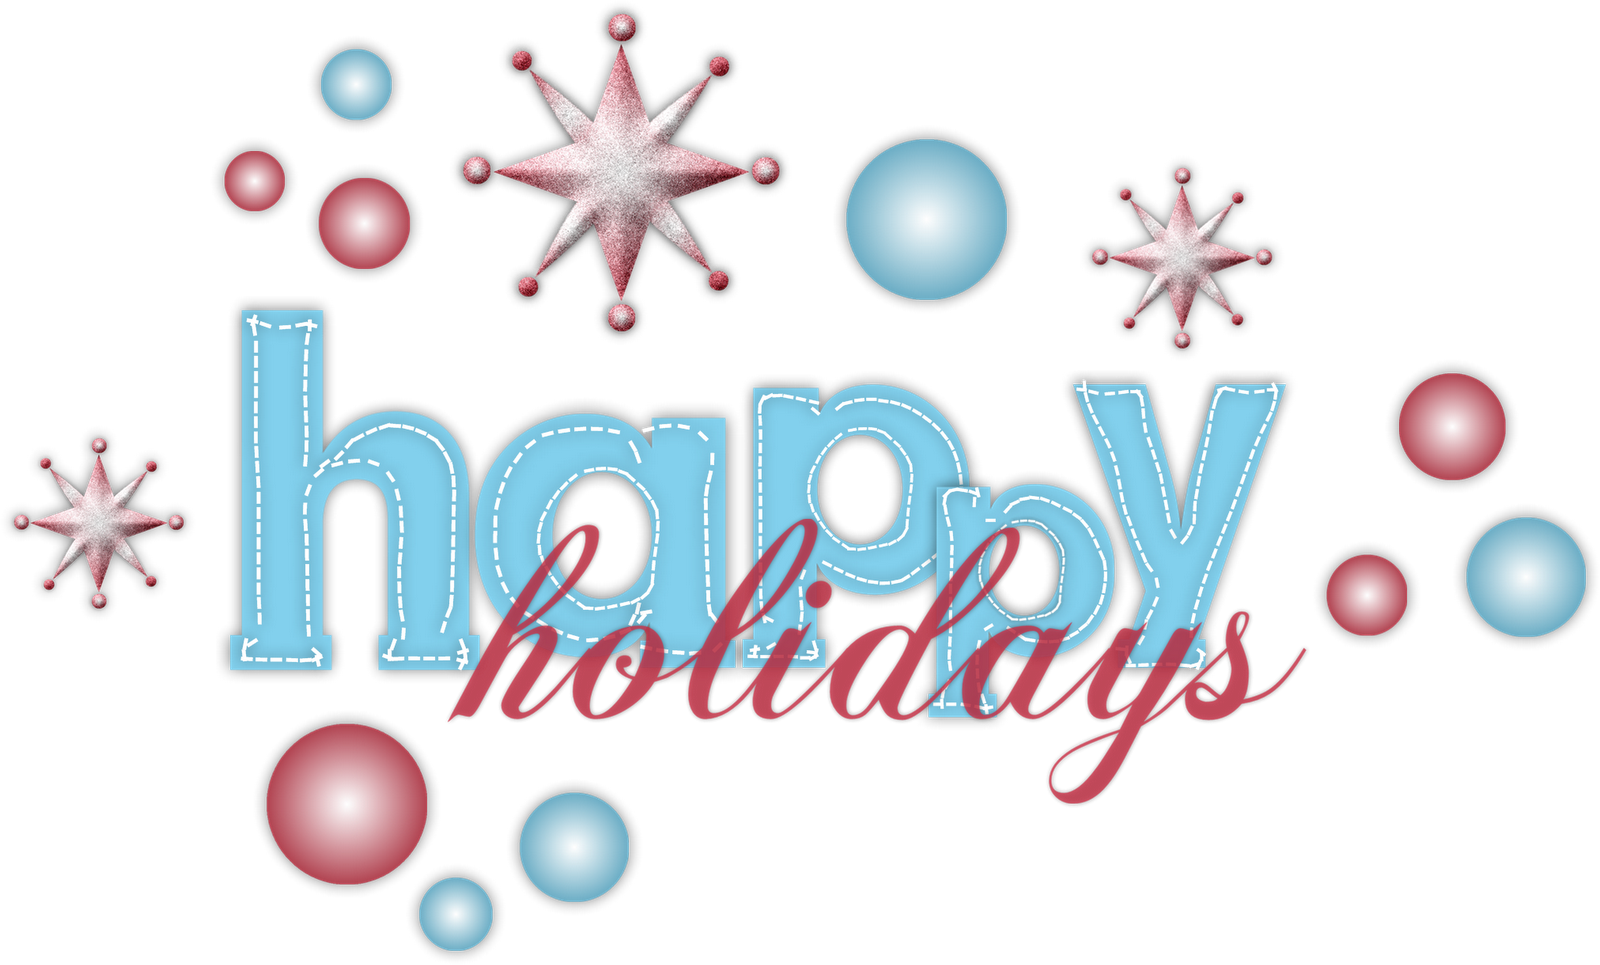 Holiday clipart transparent background. Happy holidays png free